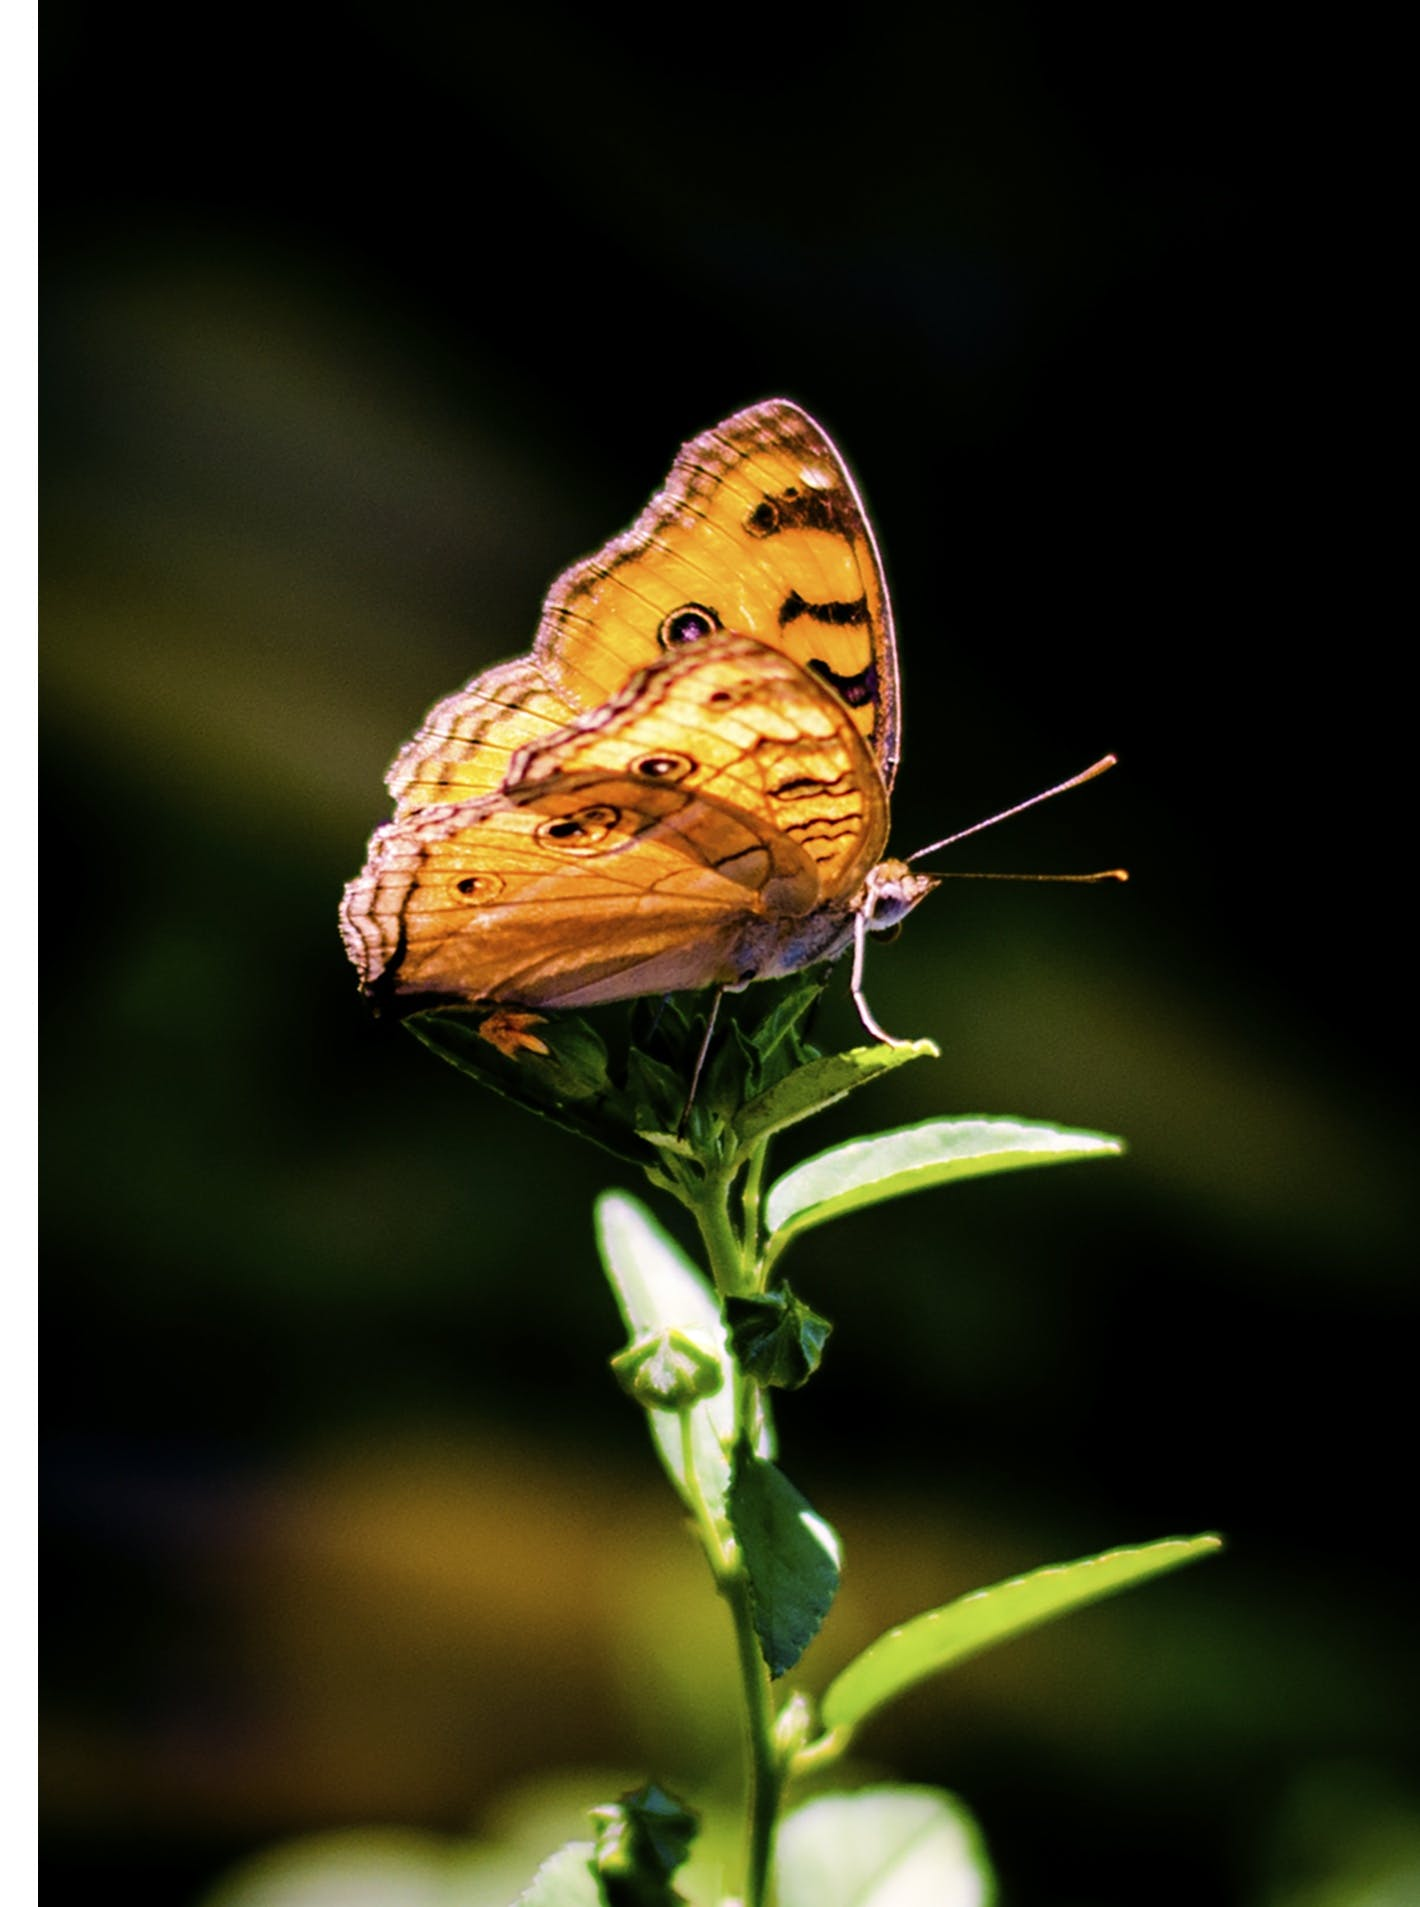 Brown and Gray Butterfly Perching on Plant